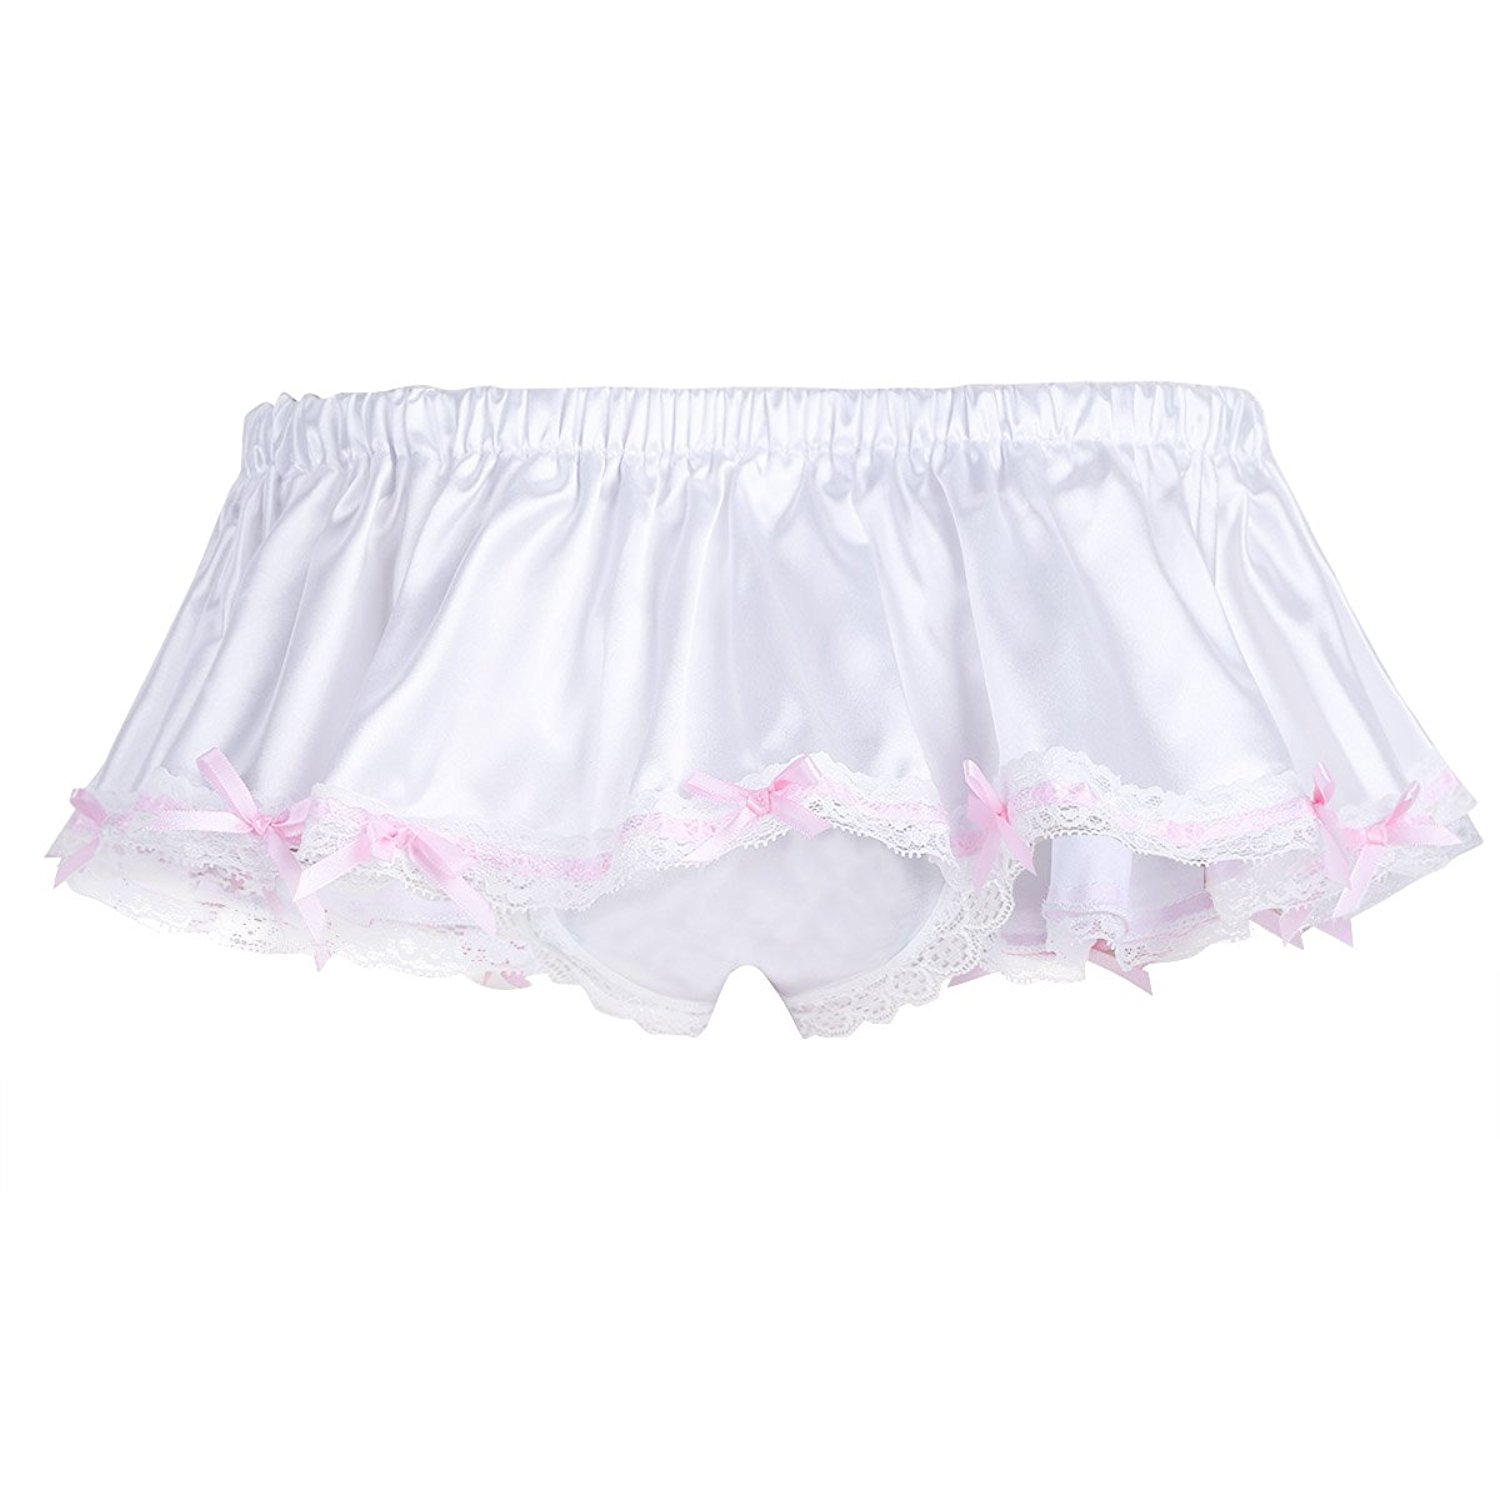 dc624630c478 Get Quotations · MSemis Men's Sissy Skirted Panties Satin Frilly Lace Briefs  Thongs Underwear Crossdress